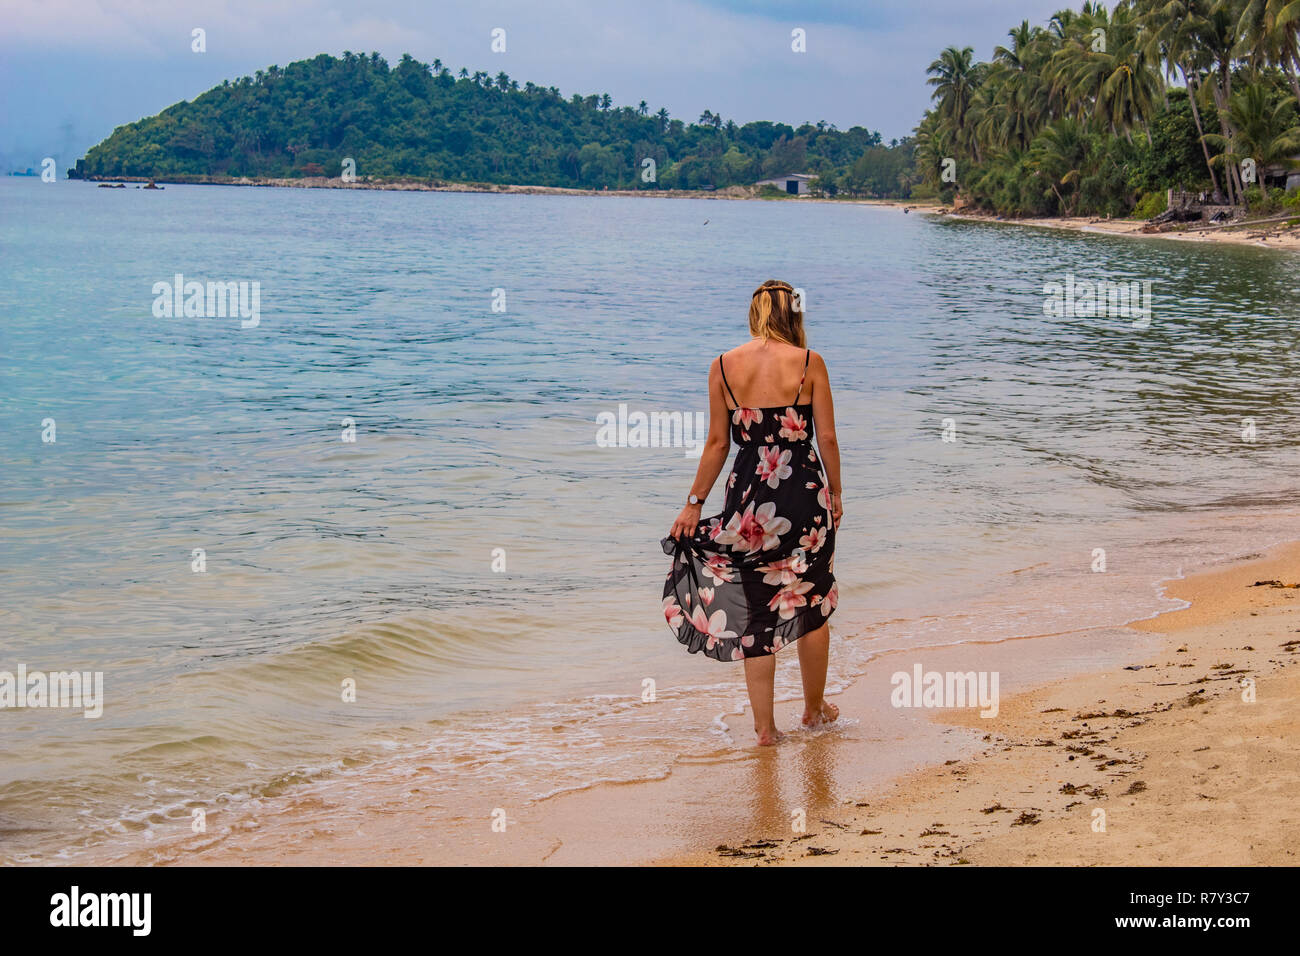 Backview of Woman with long sundress walking on the beach - Stock Image